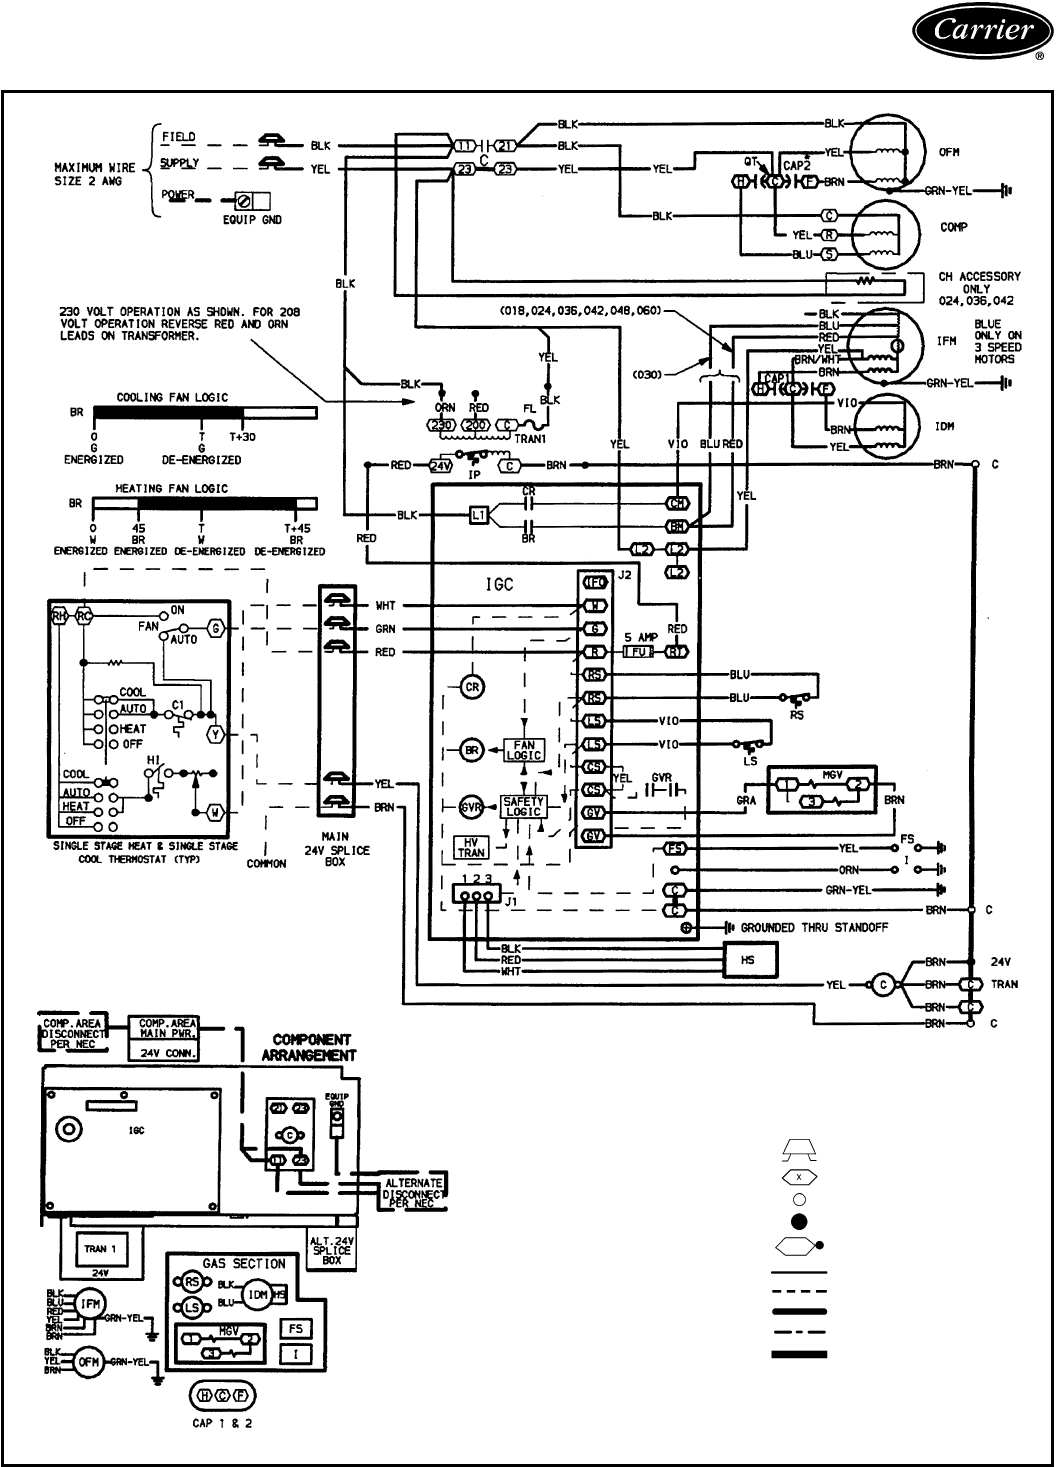 Page 21 of Carrier Gas Heater 48SS User Guide